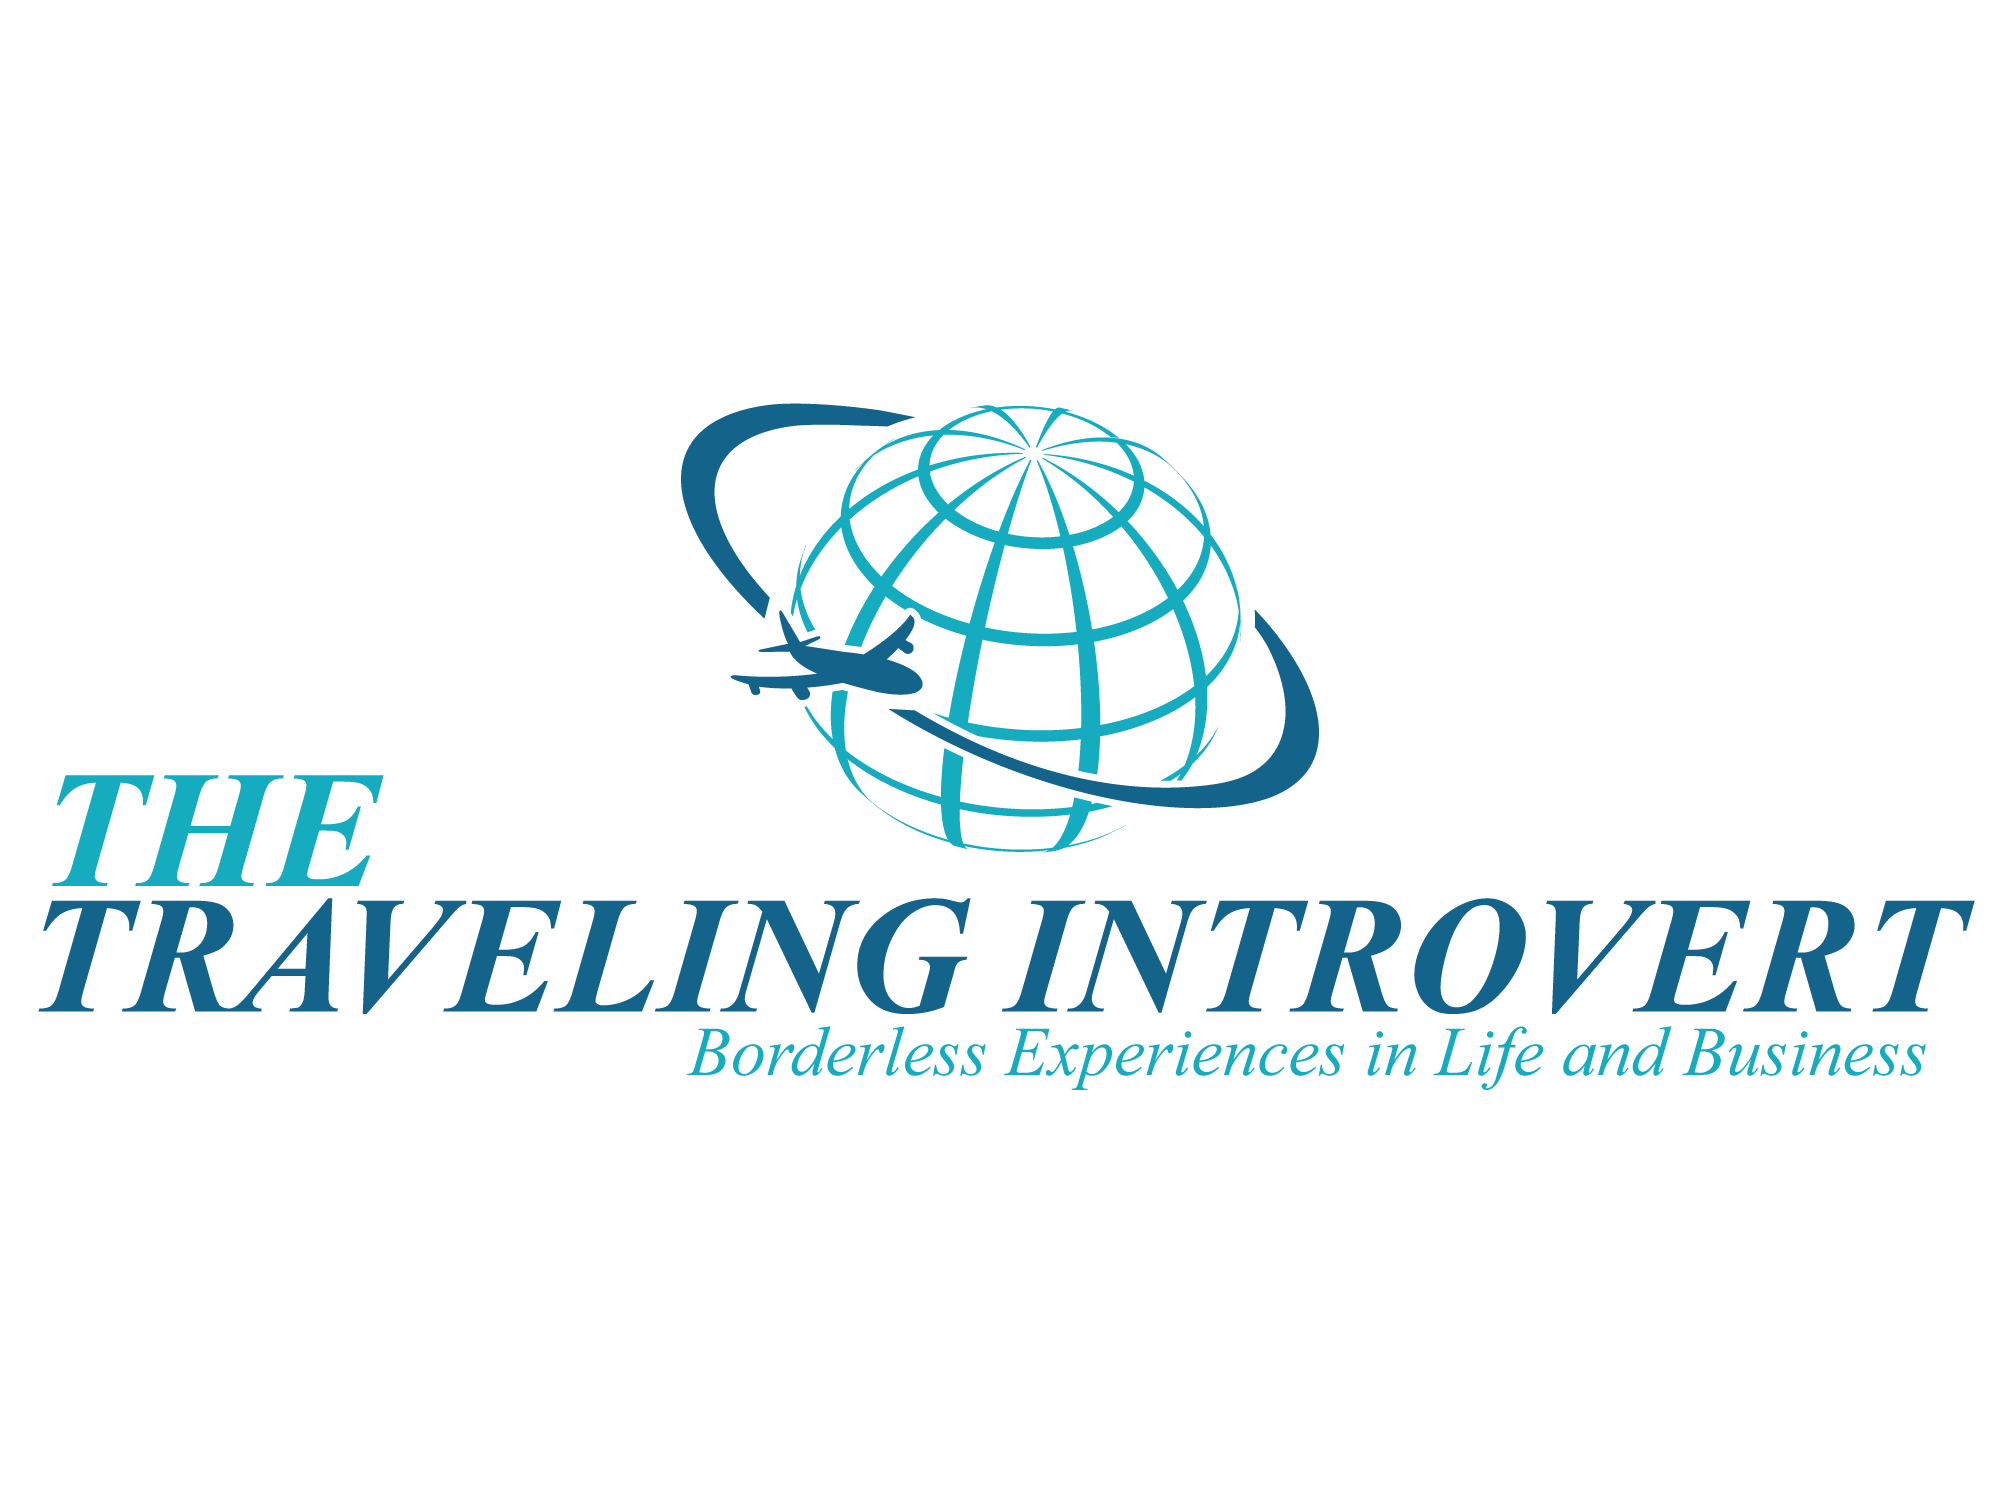 The Traveling Introvert album art